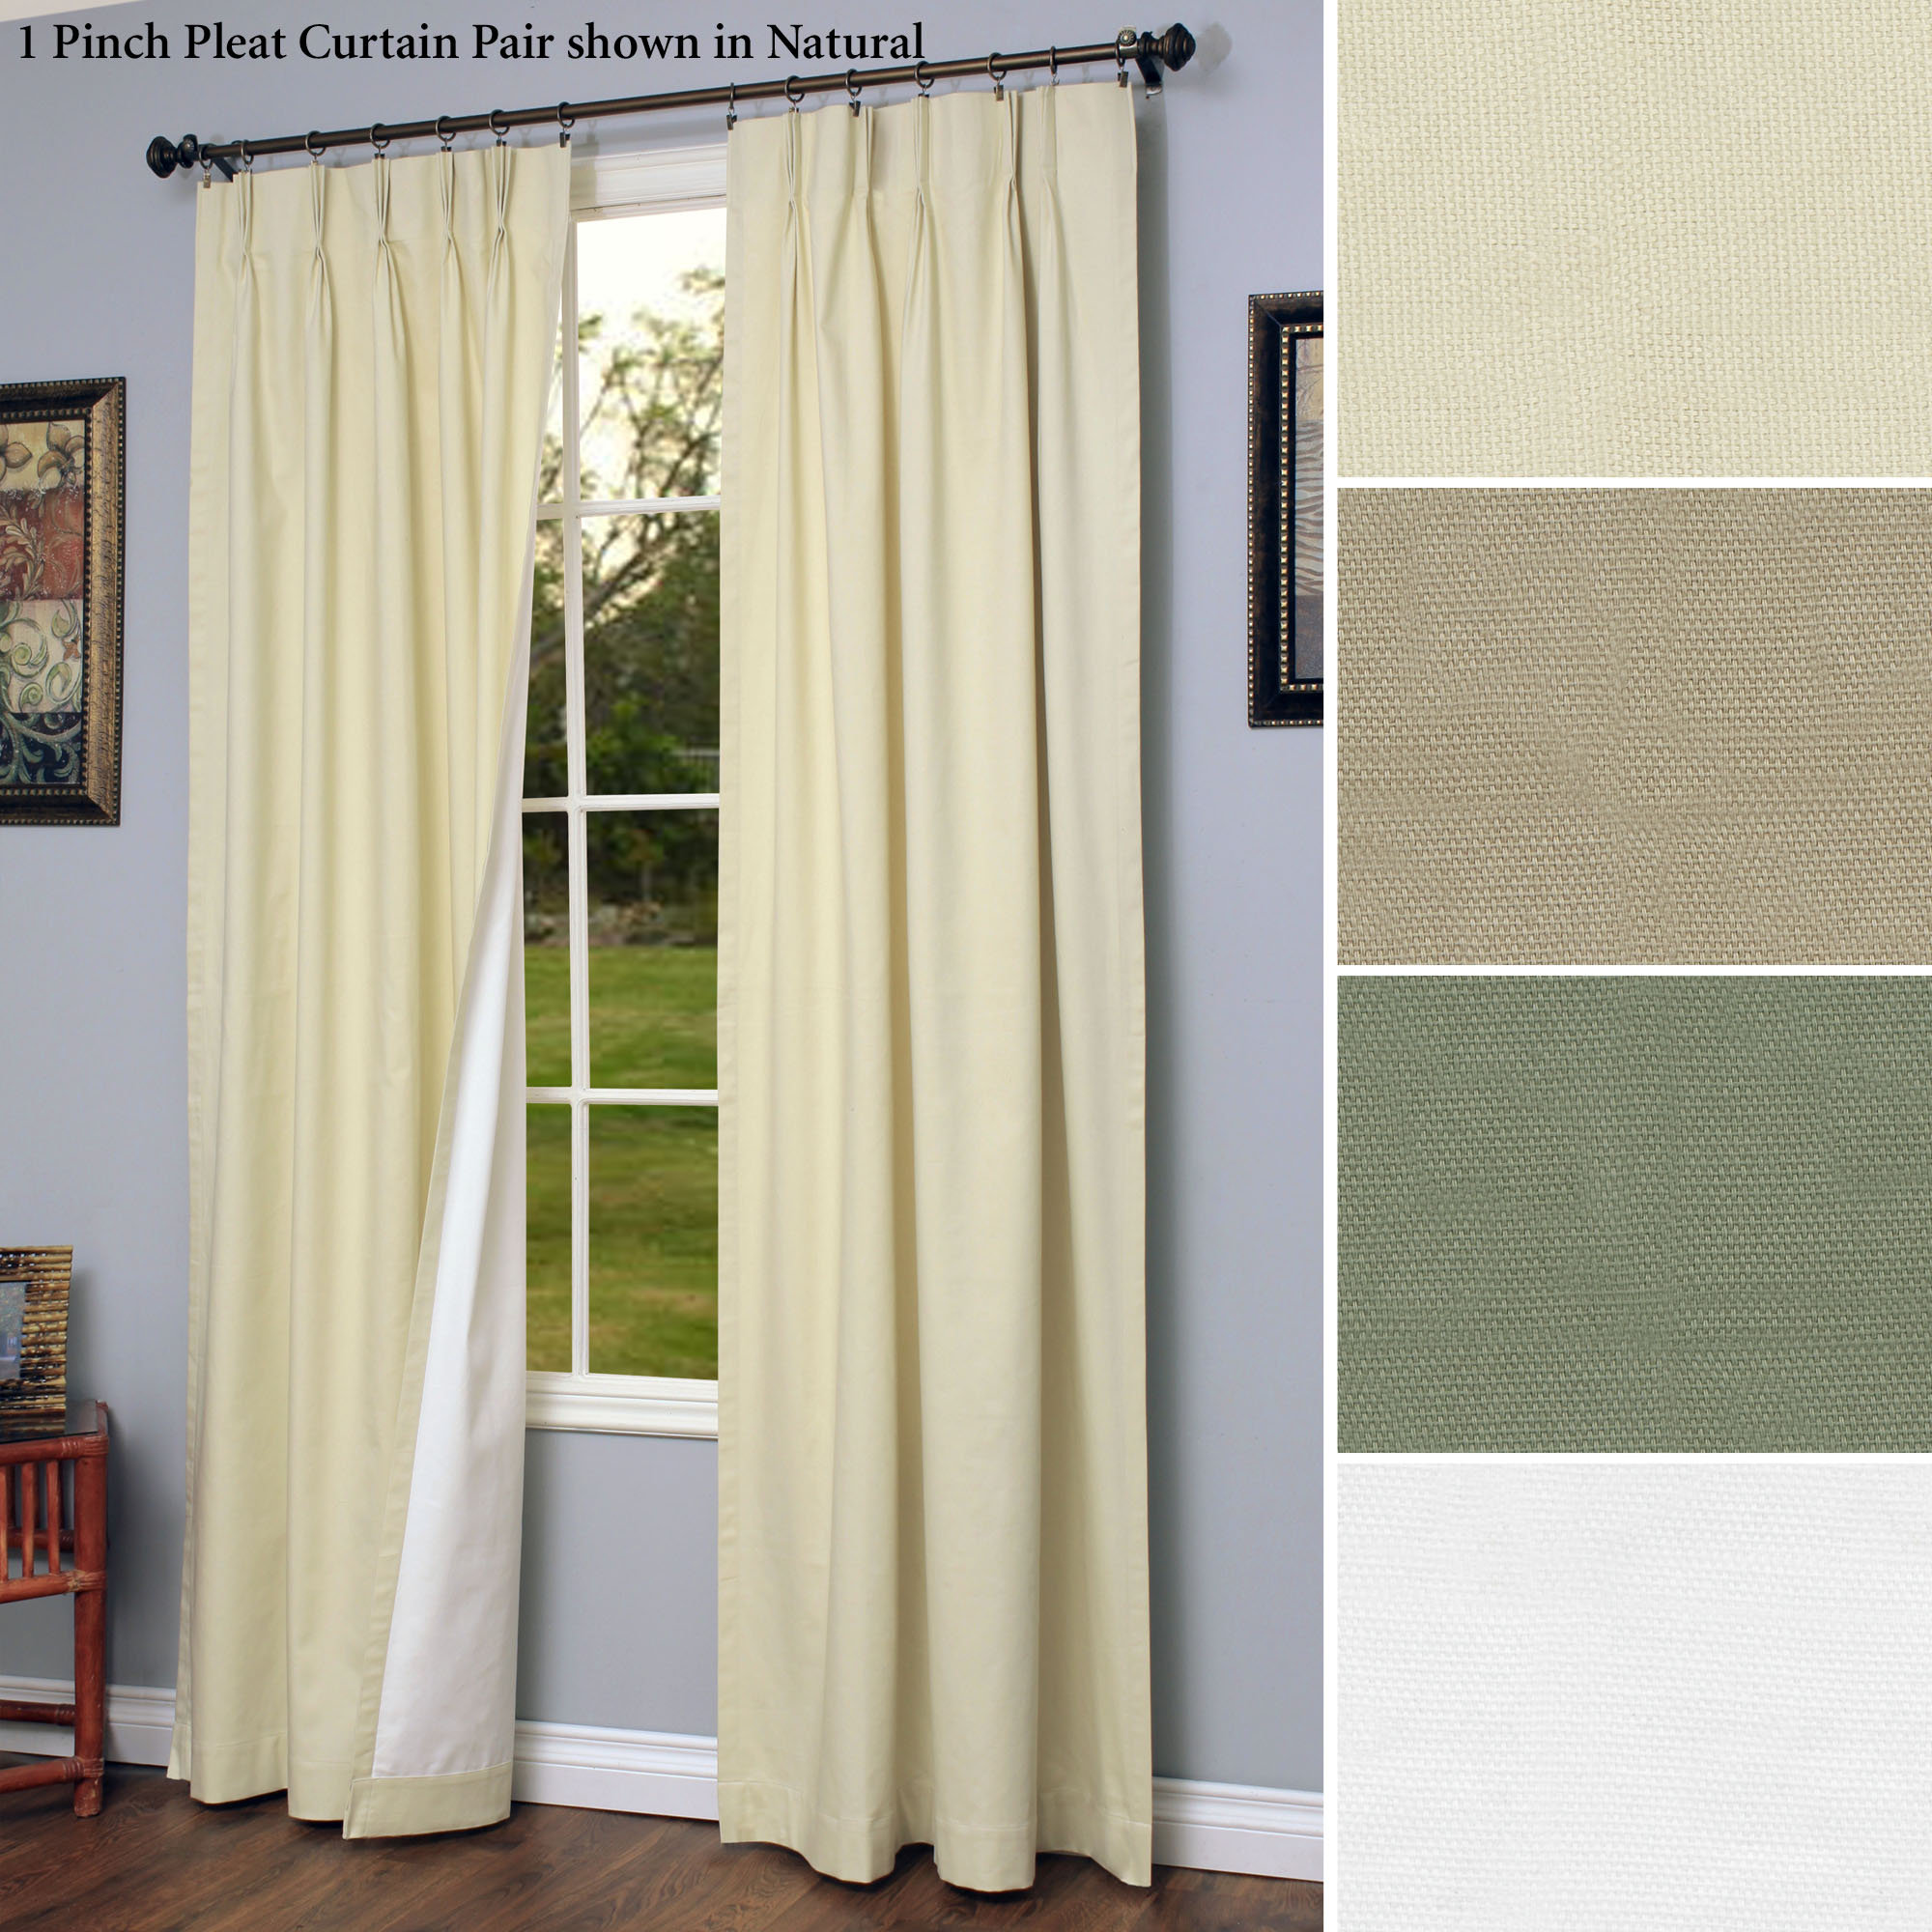 grommet with sliding curtain detachable energy mainstays com wand wide blackout extra door panel ip glass efficient curtains walmart